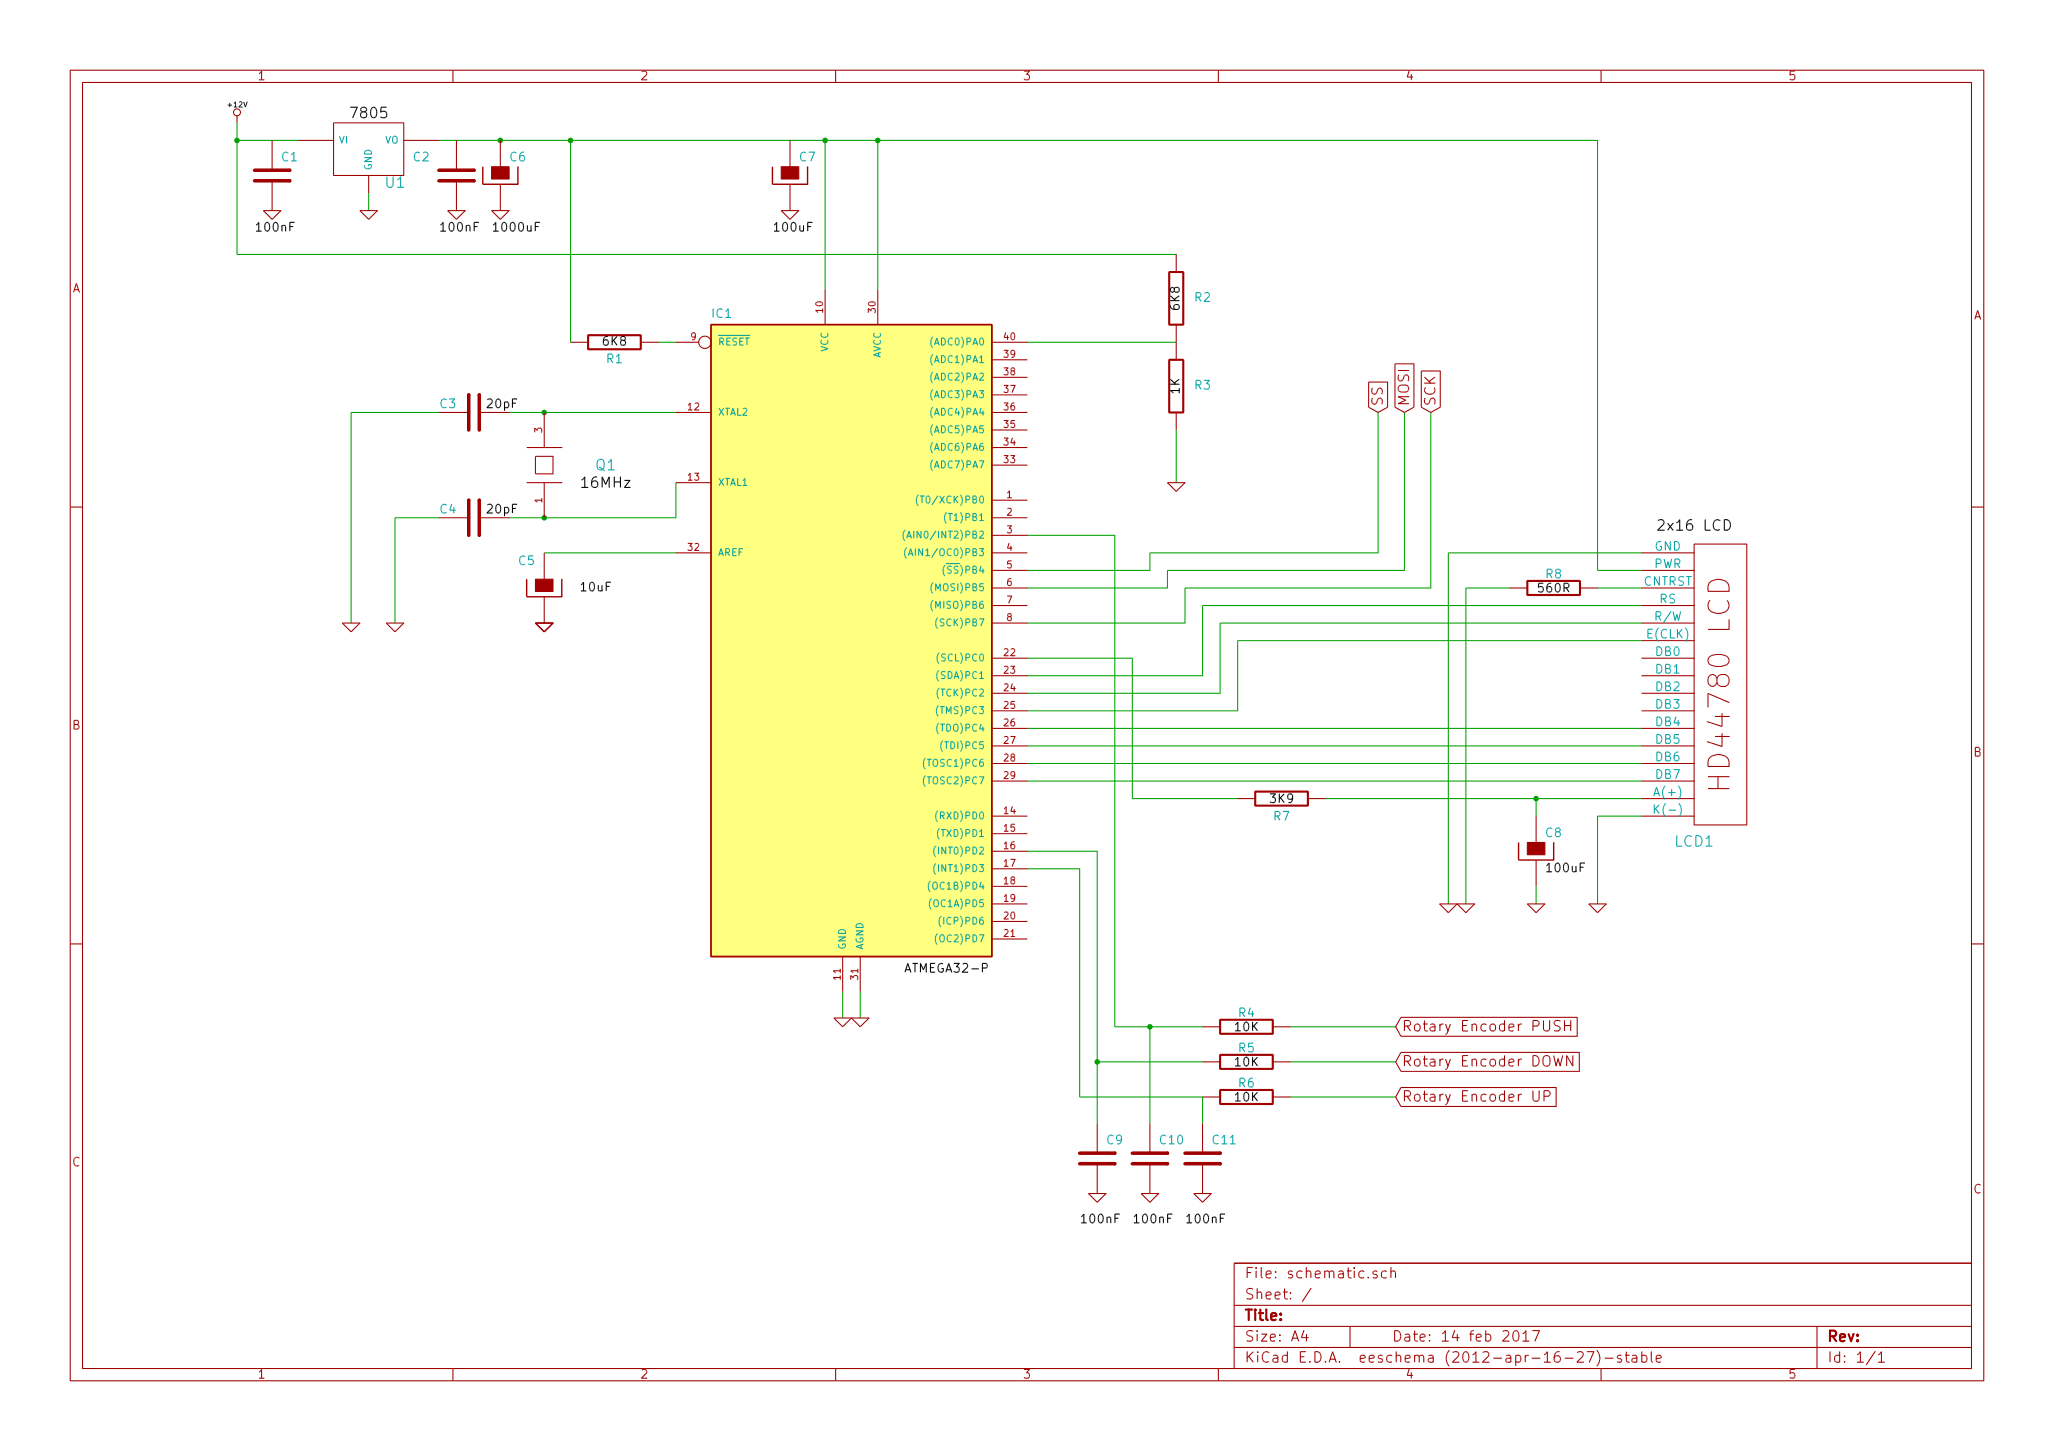 Yo3bn Bitx80 Homemade Ssb Transceiver For 80m Band Circuit Diagram 40m Schematic